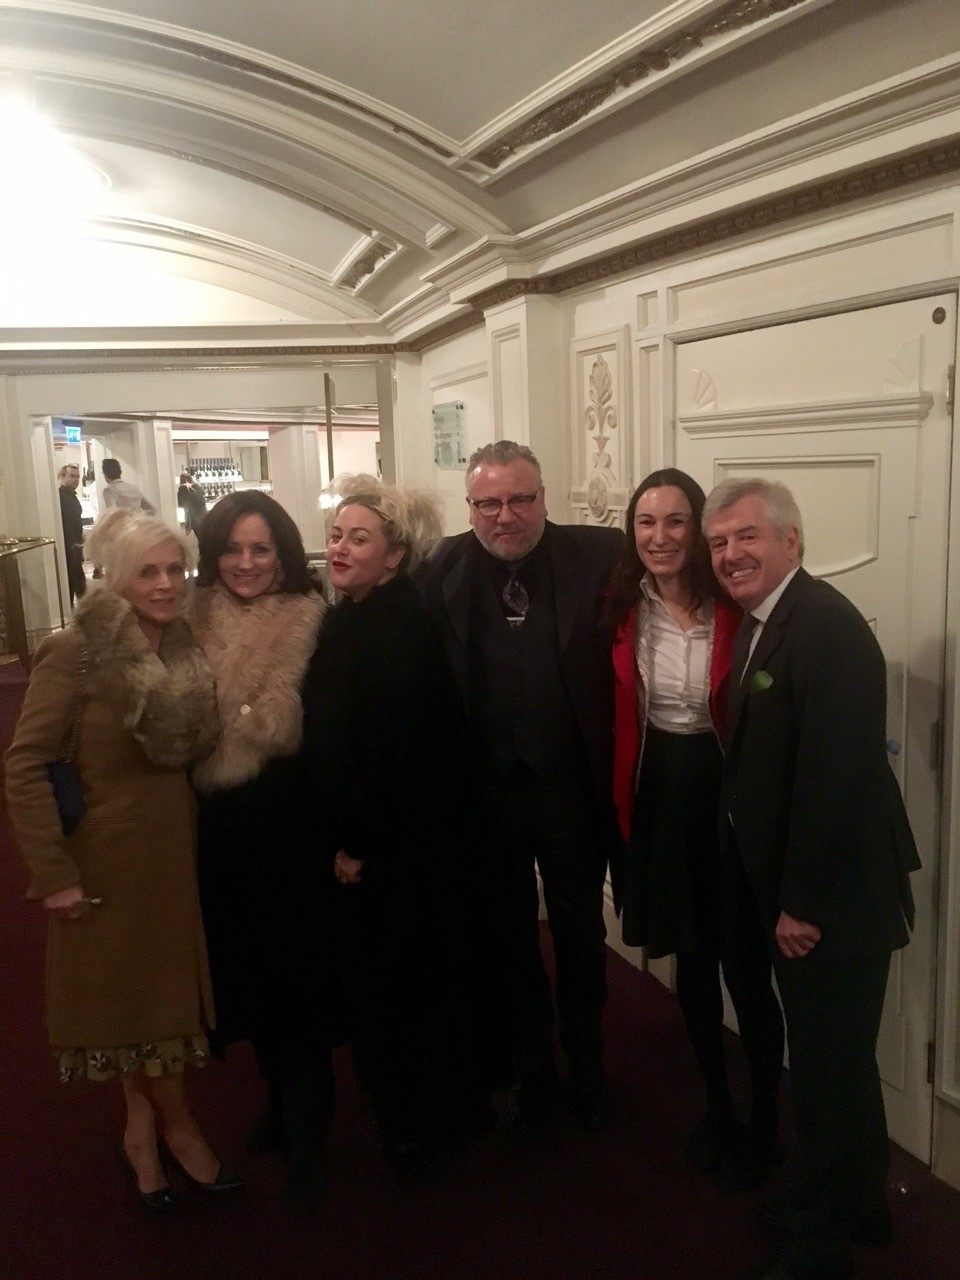 Another convert to opera! Ray Winston and family left-to-right Elaine Winston, Jacquie Brunjes, Jamie Winston, Ray Winston, Cressida Pollack CEO of ENO, Dr Harry Brunjes